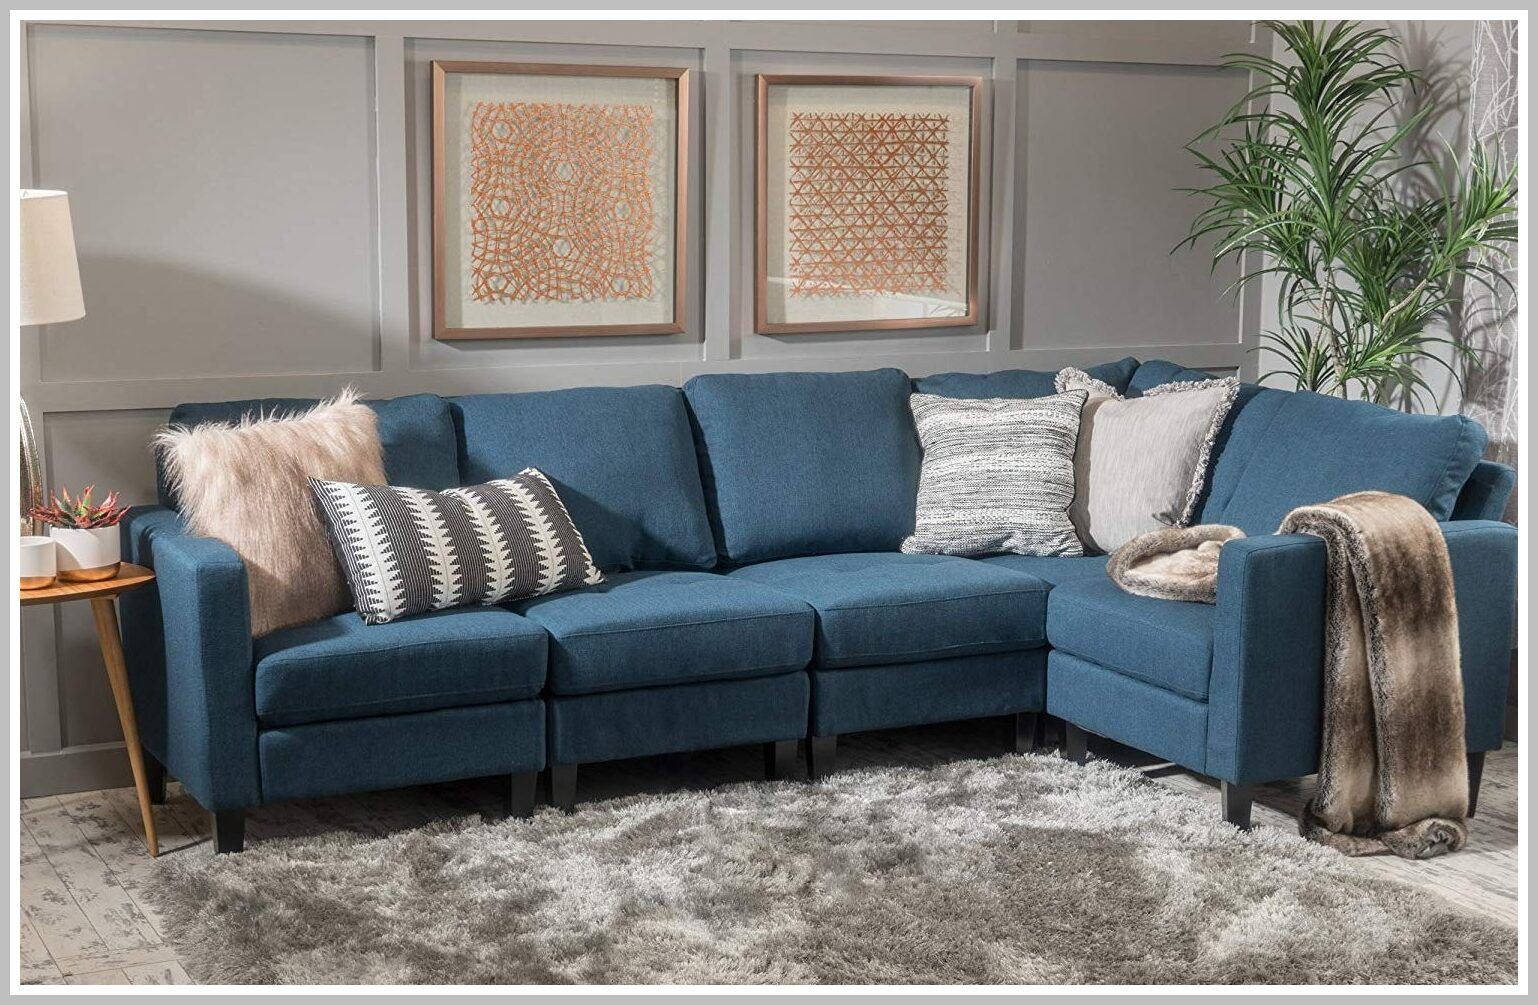 Pin On Sectional Couch Black Friday Deals